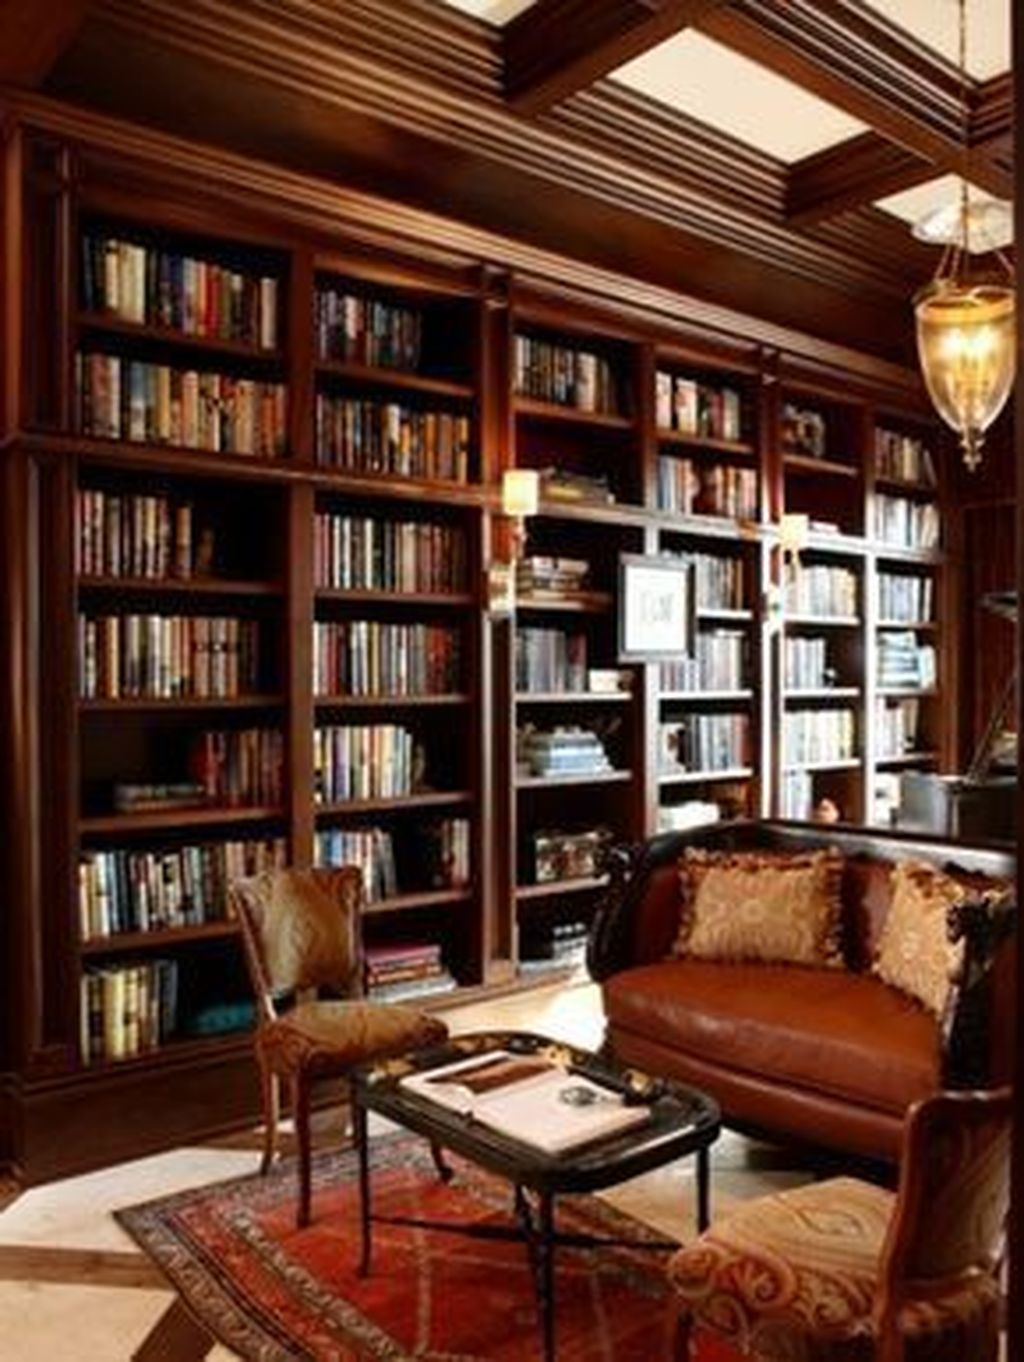 Smart Library Design Ideas For Home To Add To Your List 36